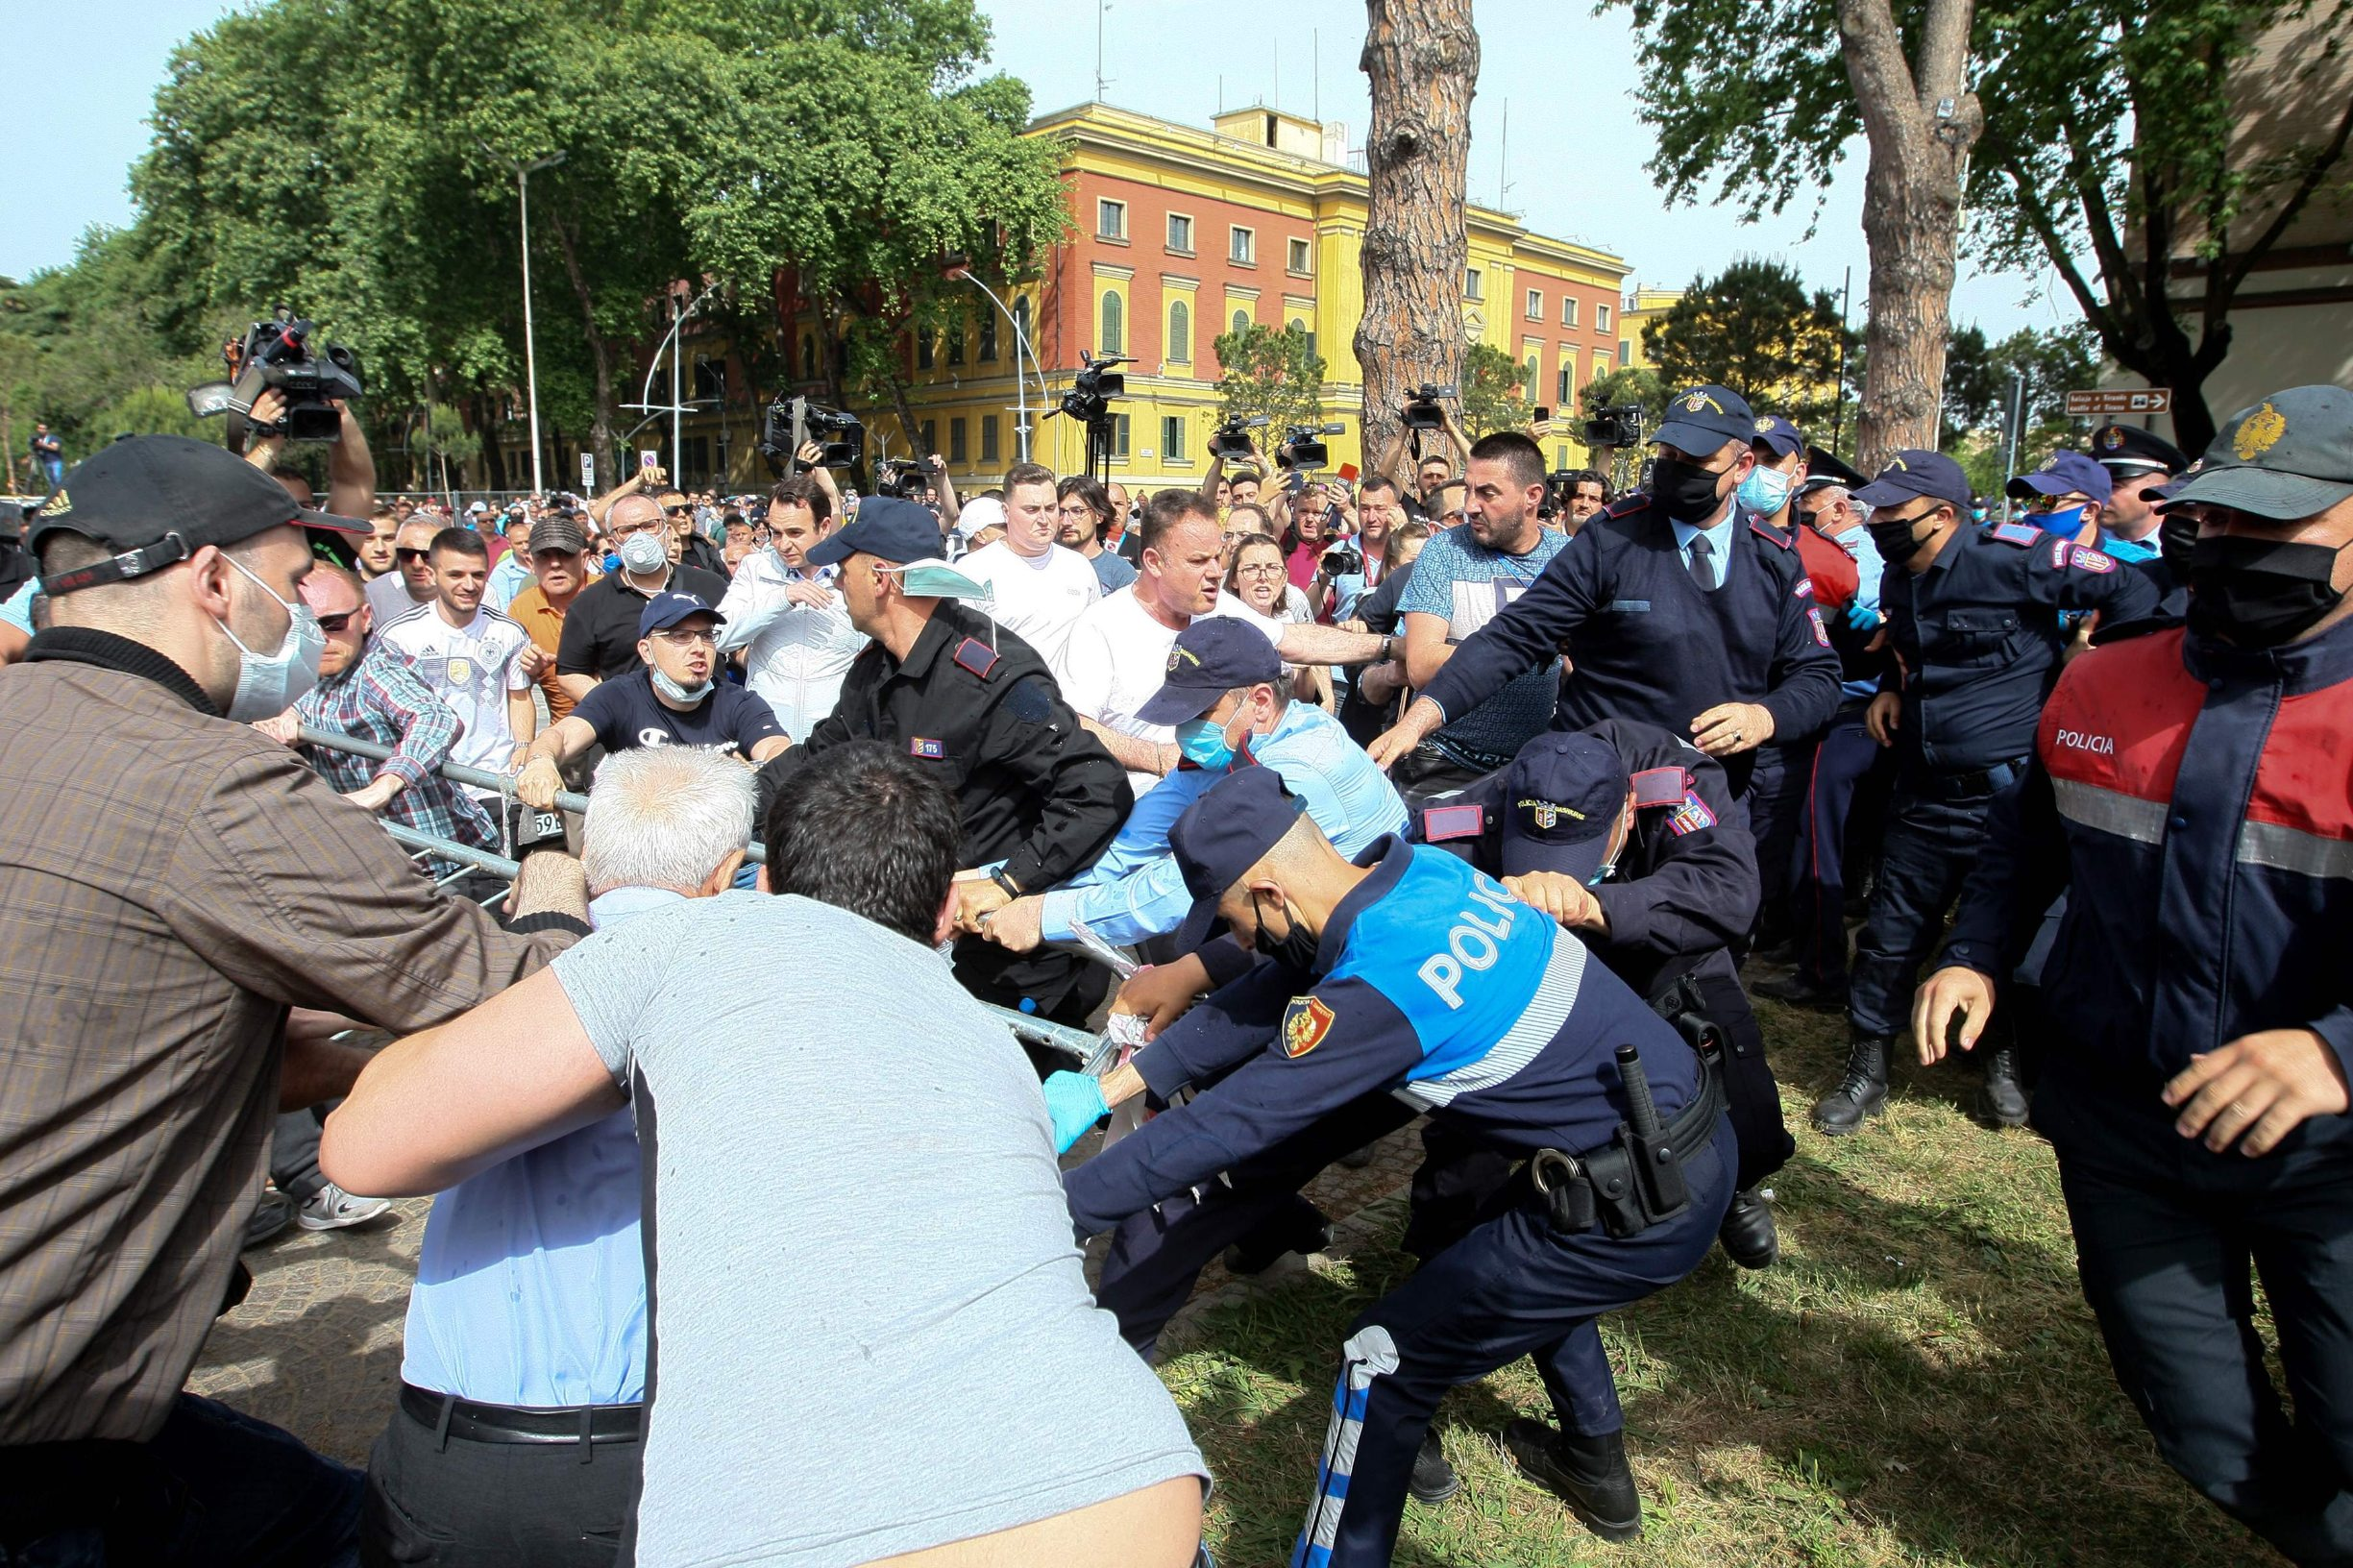 Albanian protestors clash with police forces in a desperate attempt to prevent the demolition of the 70-year old neoclassical building of the National Theatre, on May 17, 2020. - Albanian police Sunday clashed with protesters including opposition supporters angry over the demolition of the national theatre, leading officers to detain nearly 40 people. (Photo by Gent SHKULLAKU / AFP)